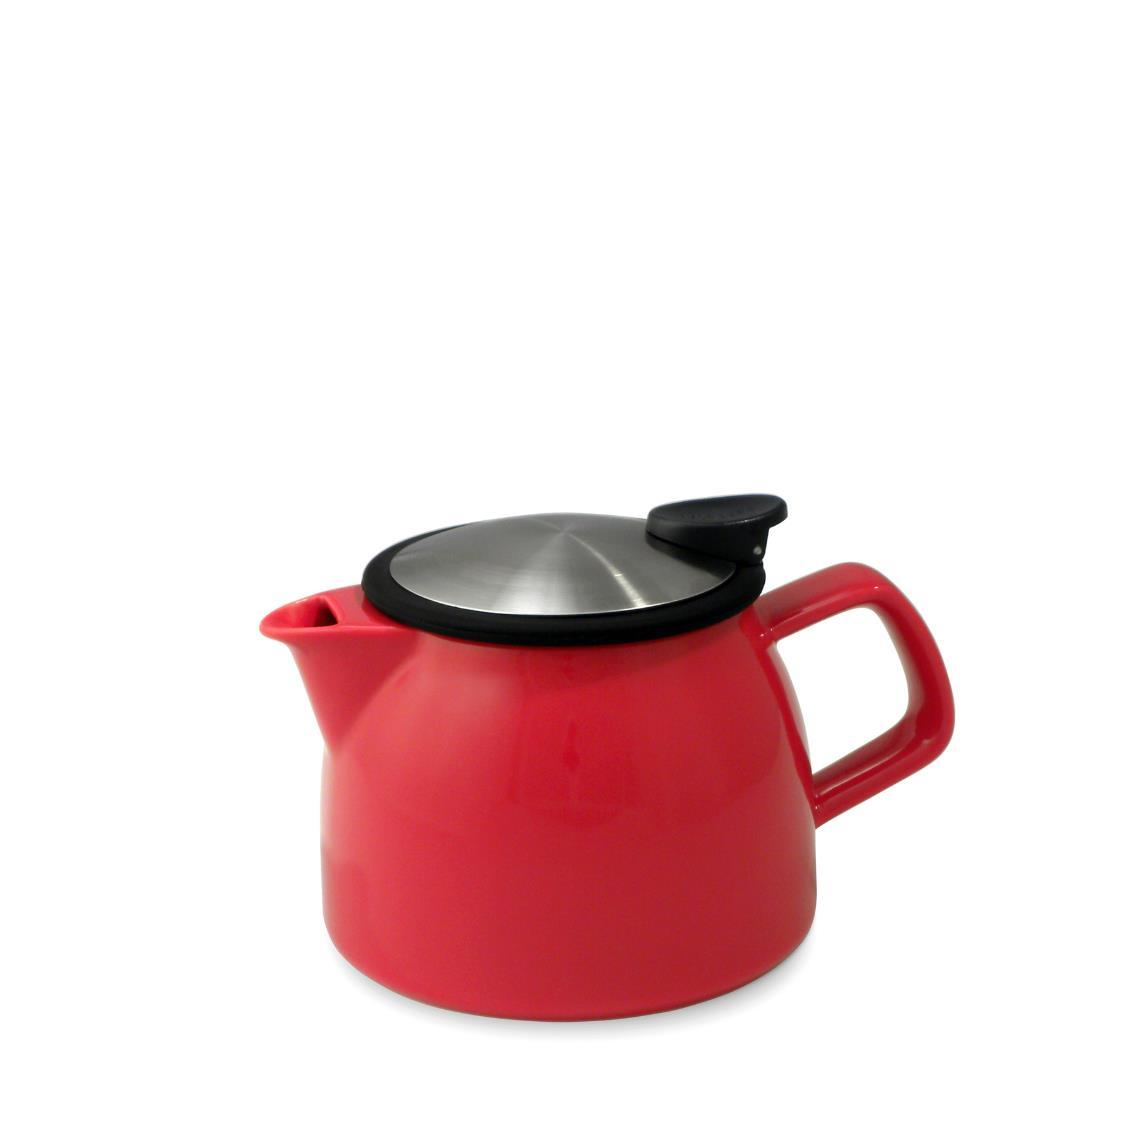 Bell Teapot with Basket Infuser 470ml FL543-RED